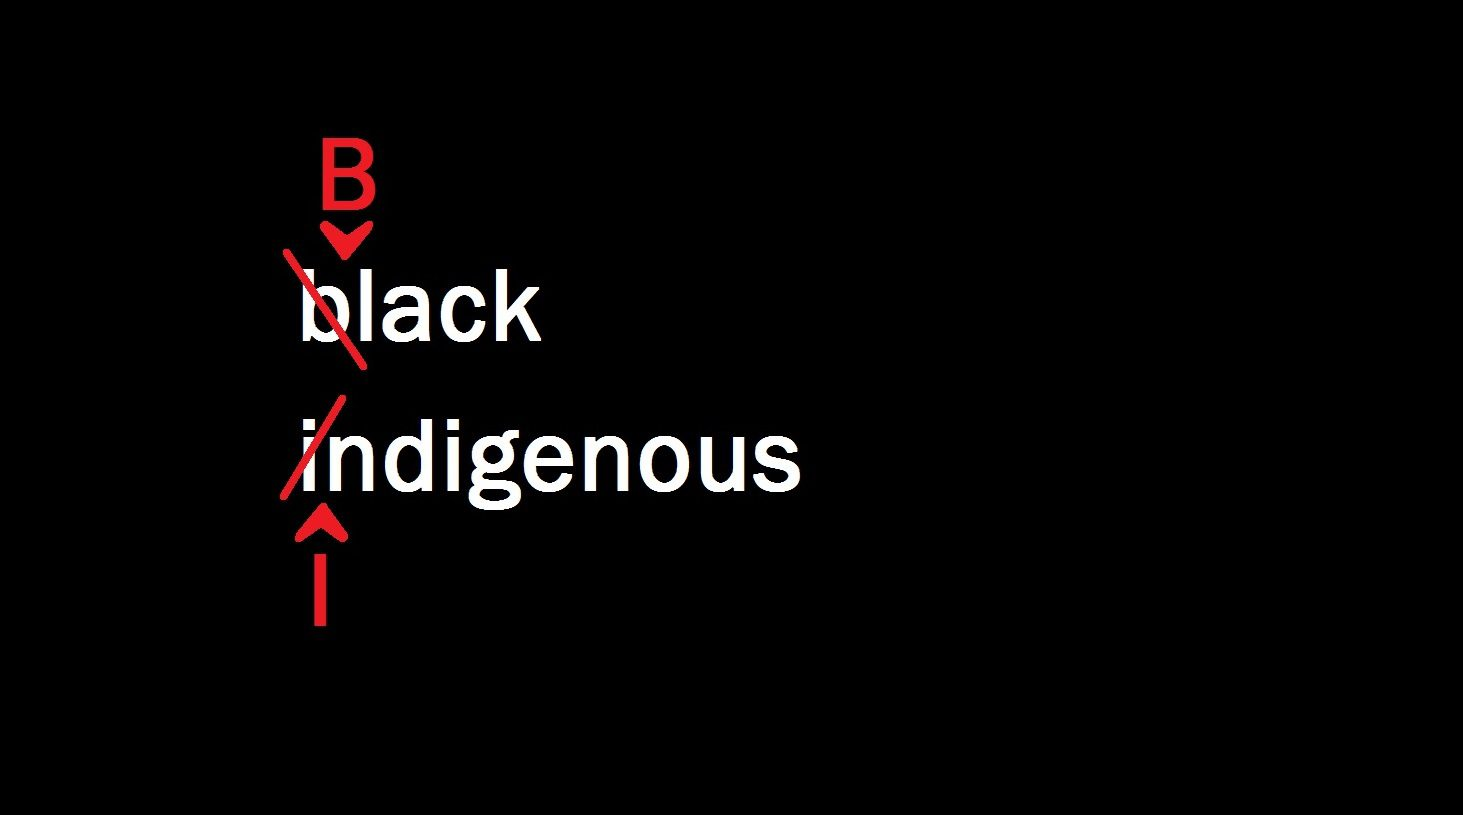 Capitalized Indigenous and Black